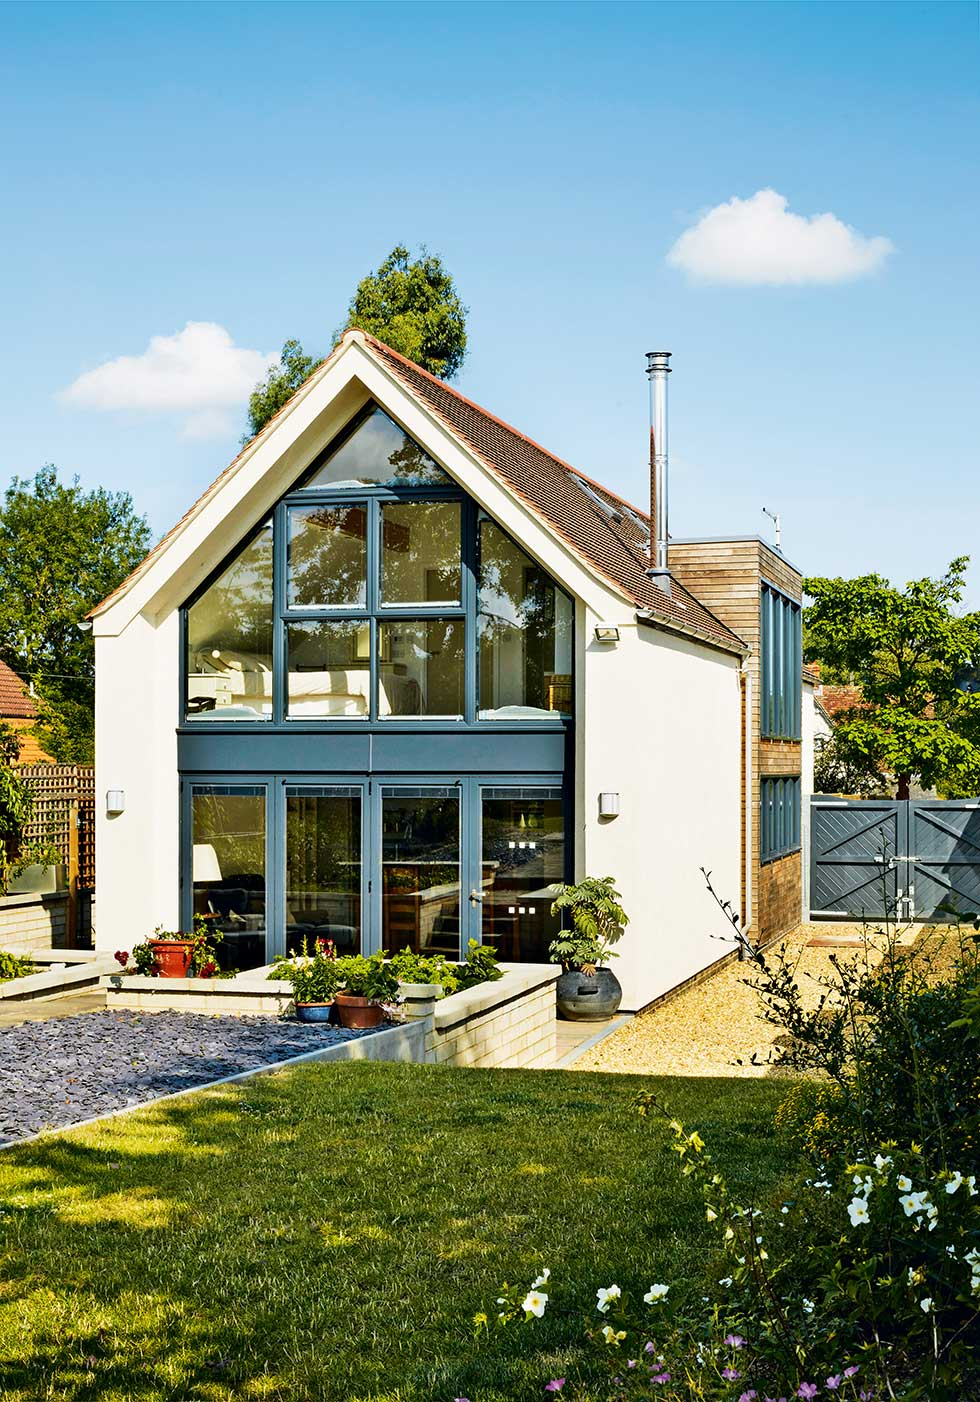 davies-self-build-double-height